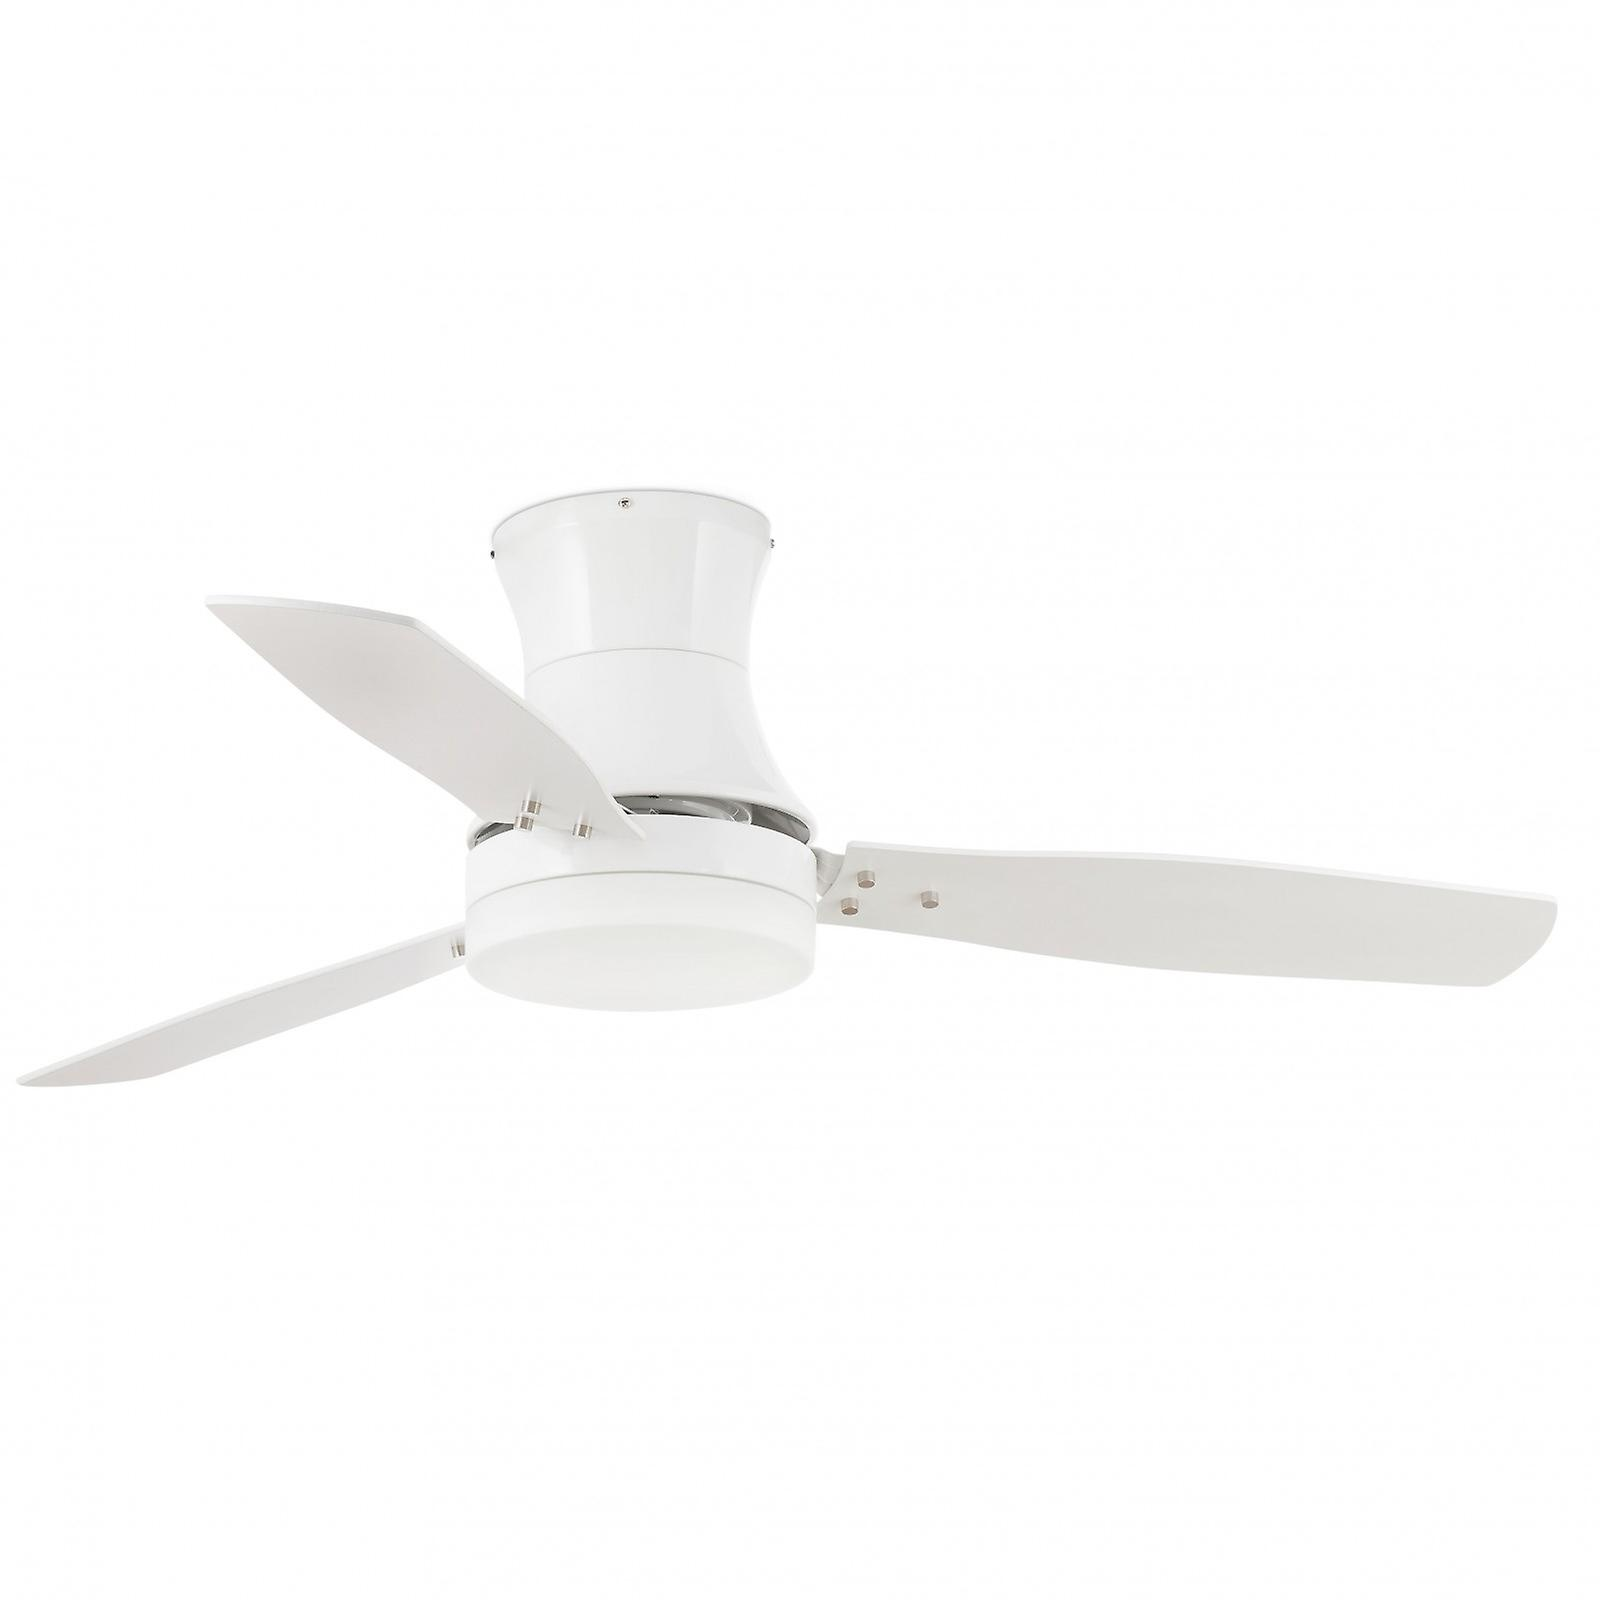 Ceiling Fan Tonsay White with Light and Remote